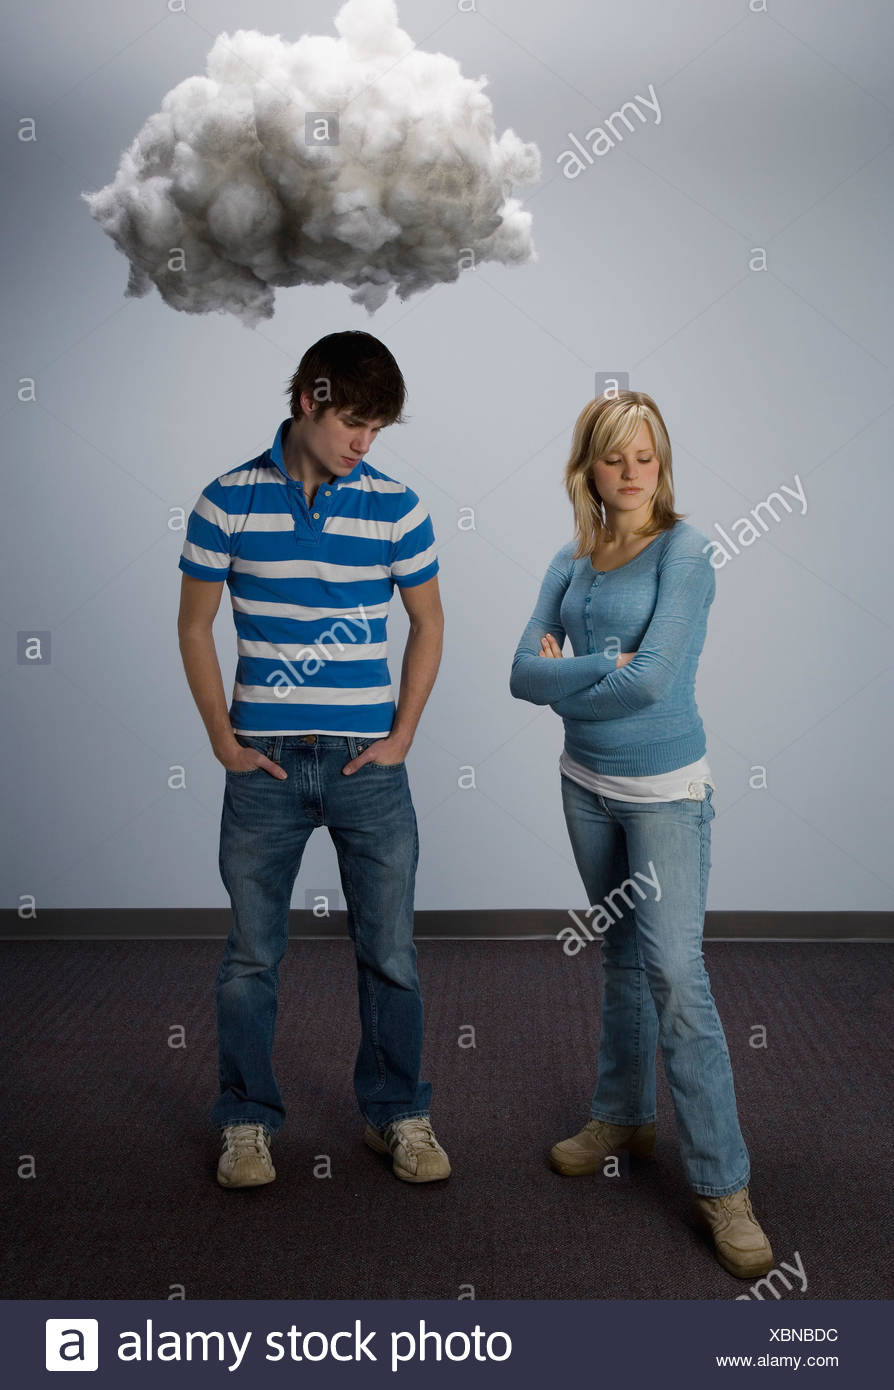 Male and female standing apart fighting - Stock Image